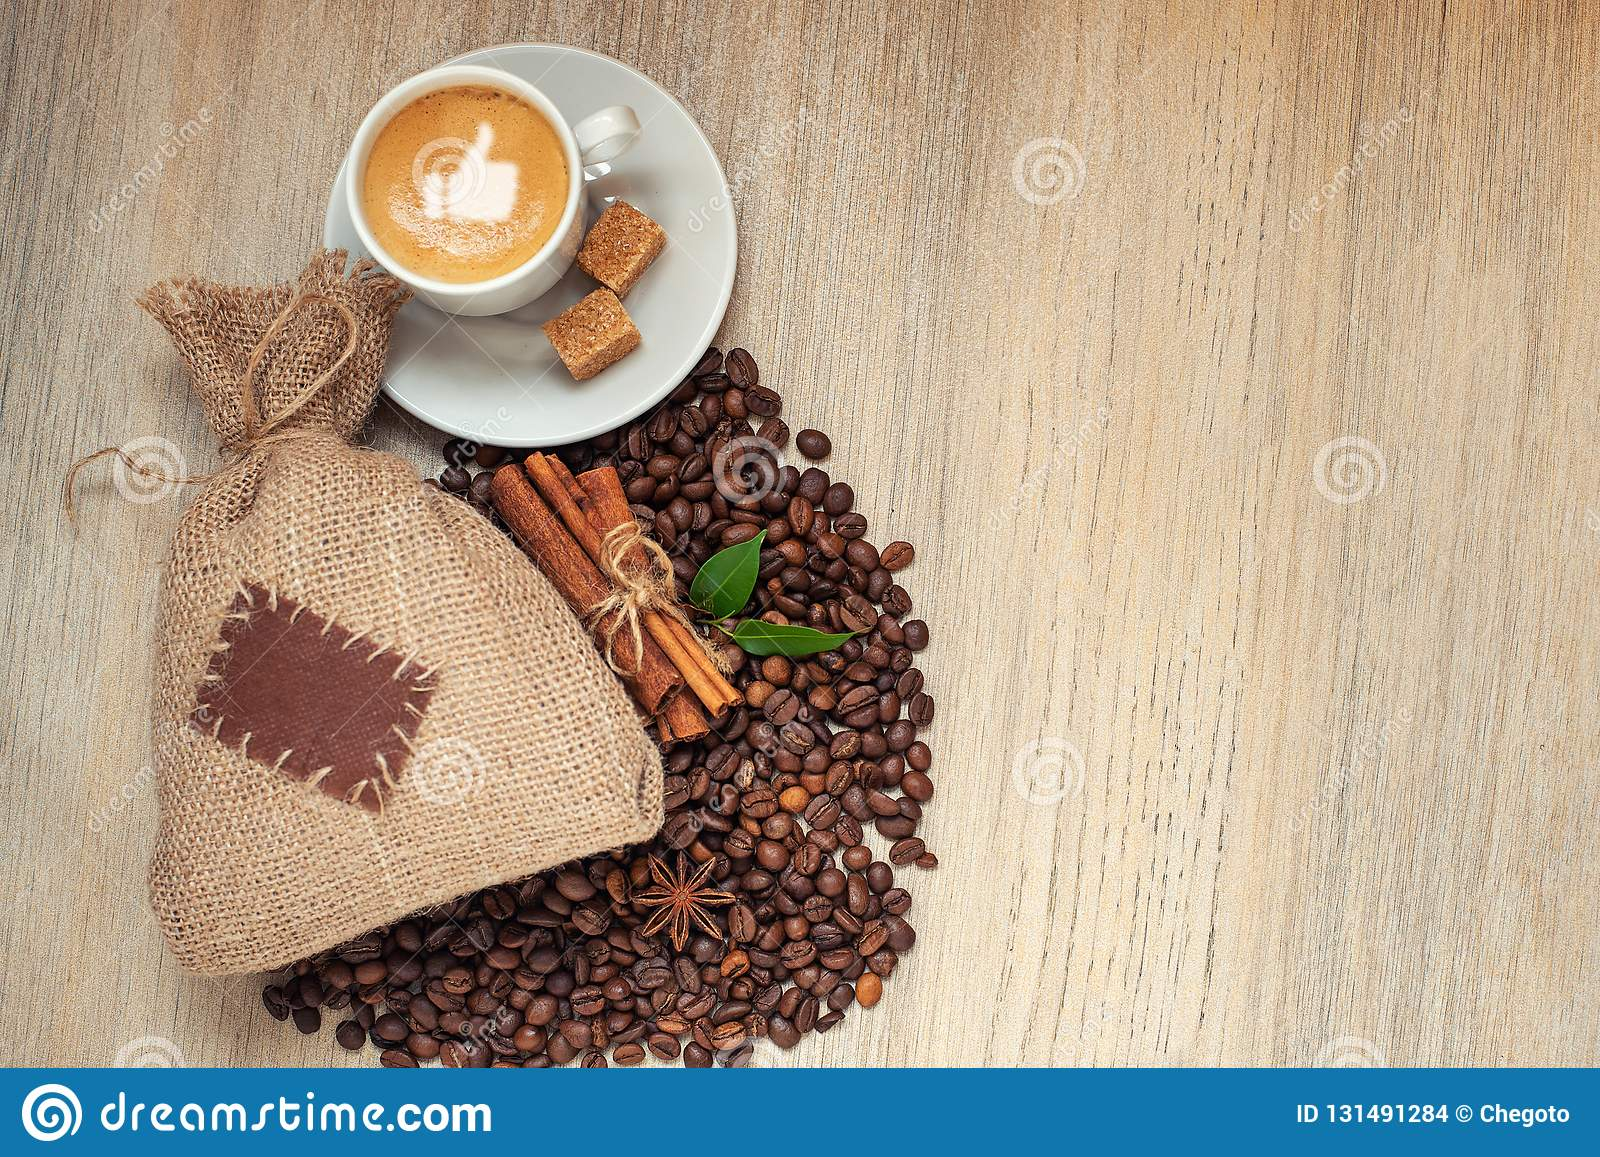 Cup with espresso with coffee beans, burlap sack and cinnamon on light wooden background. With like sign on coffee foam